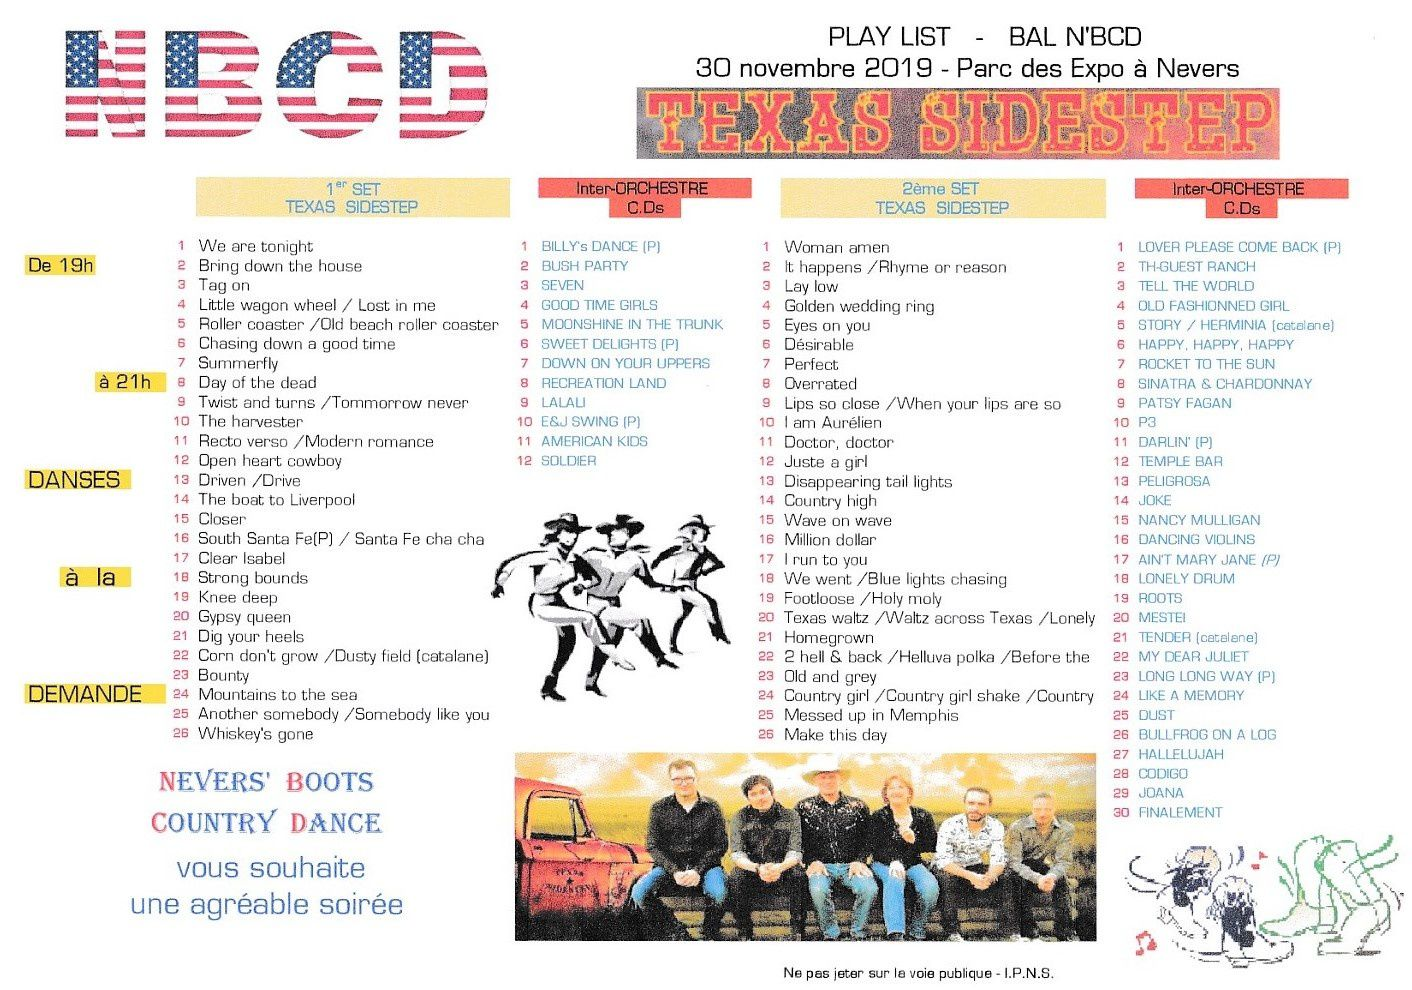 PLAYLIST NEVERS 30 NOVEMBRE